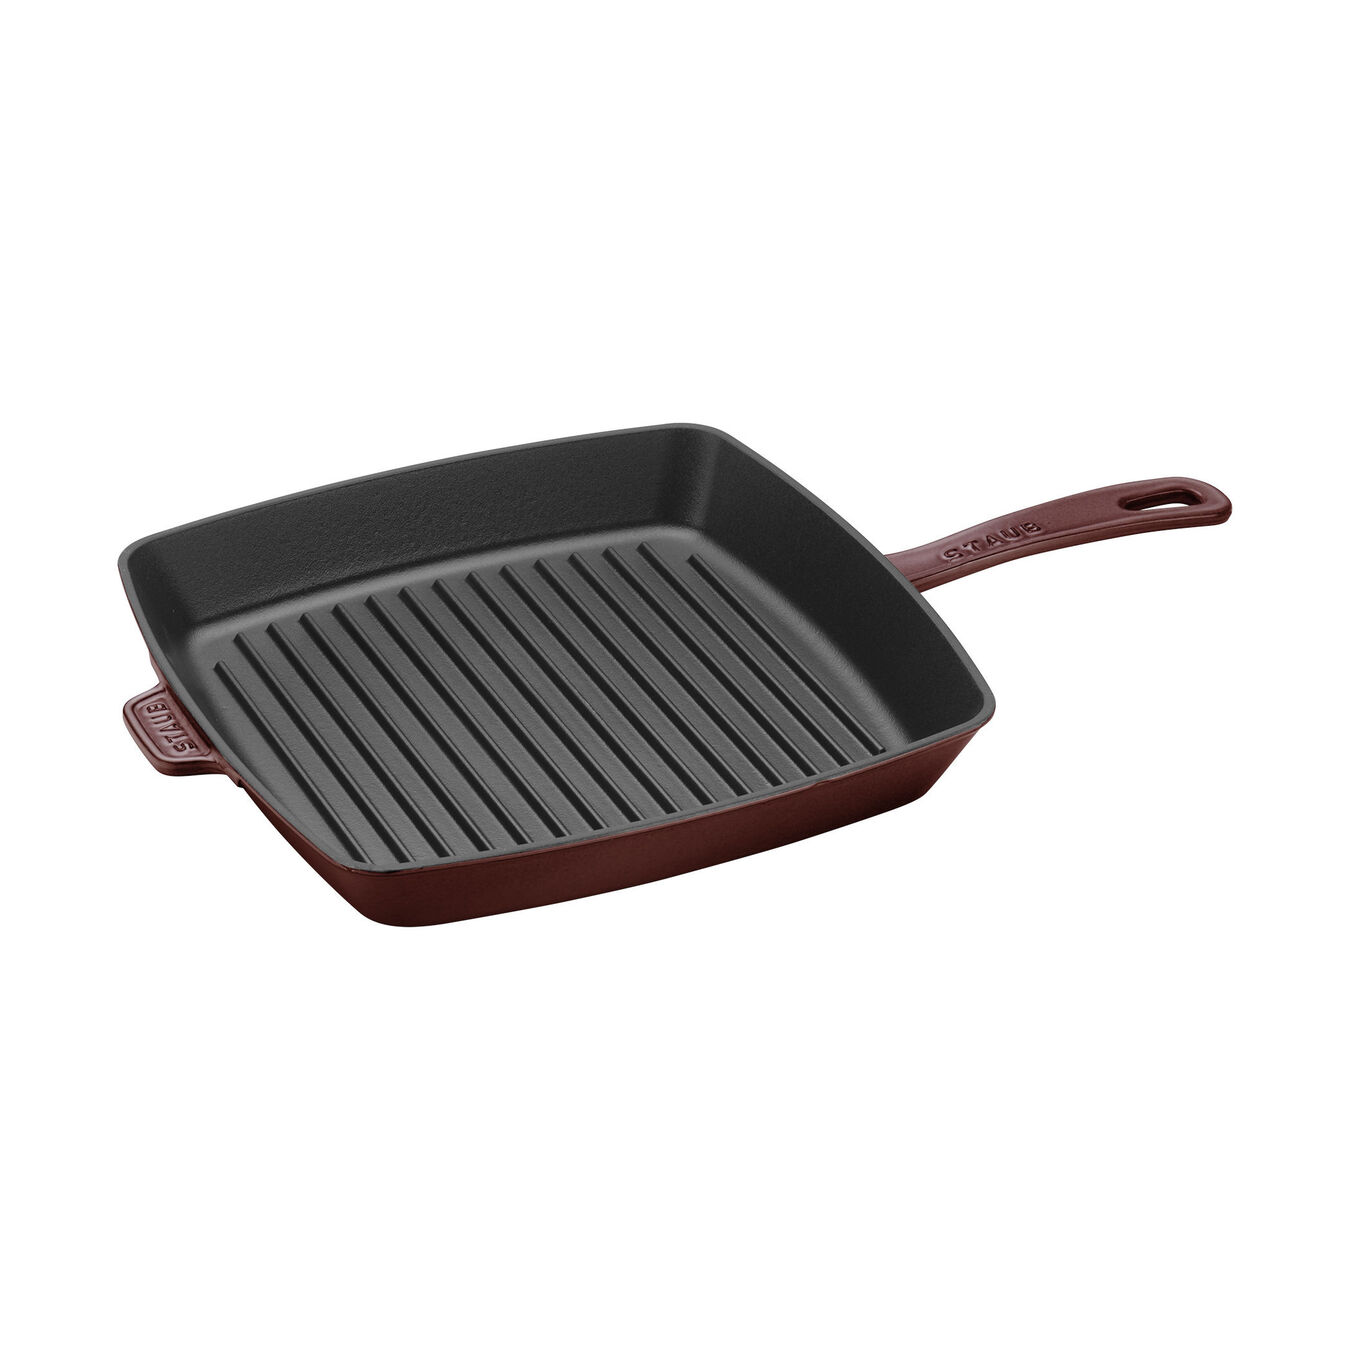 26 cm square American grill, grenadine-red,,large 1